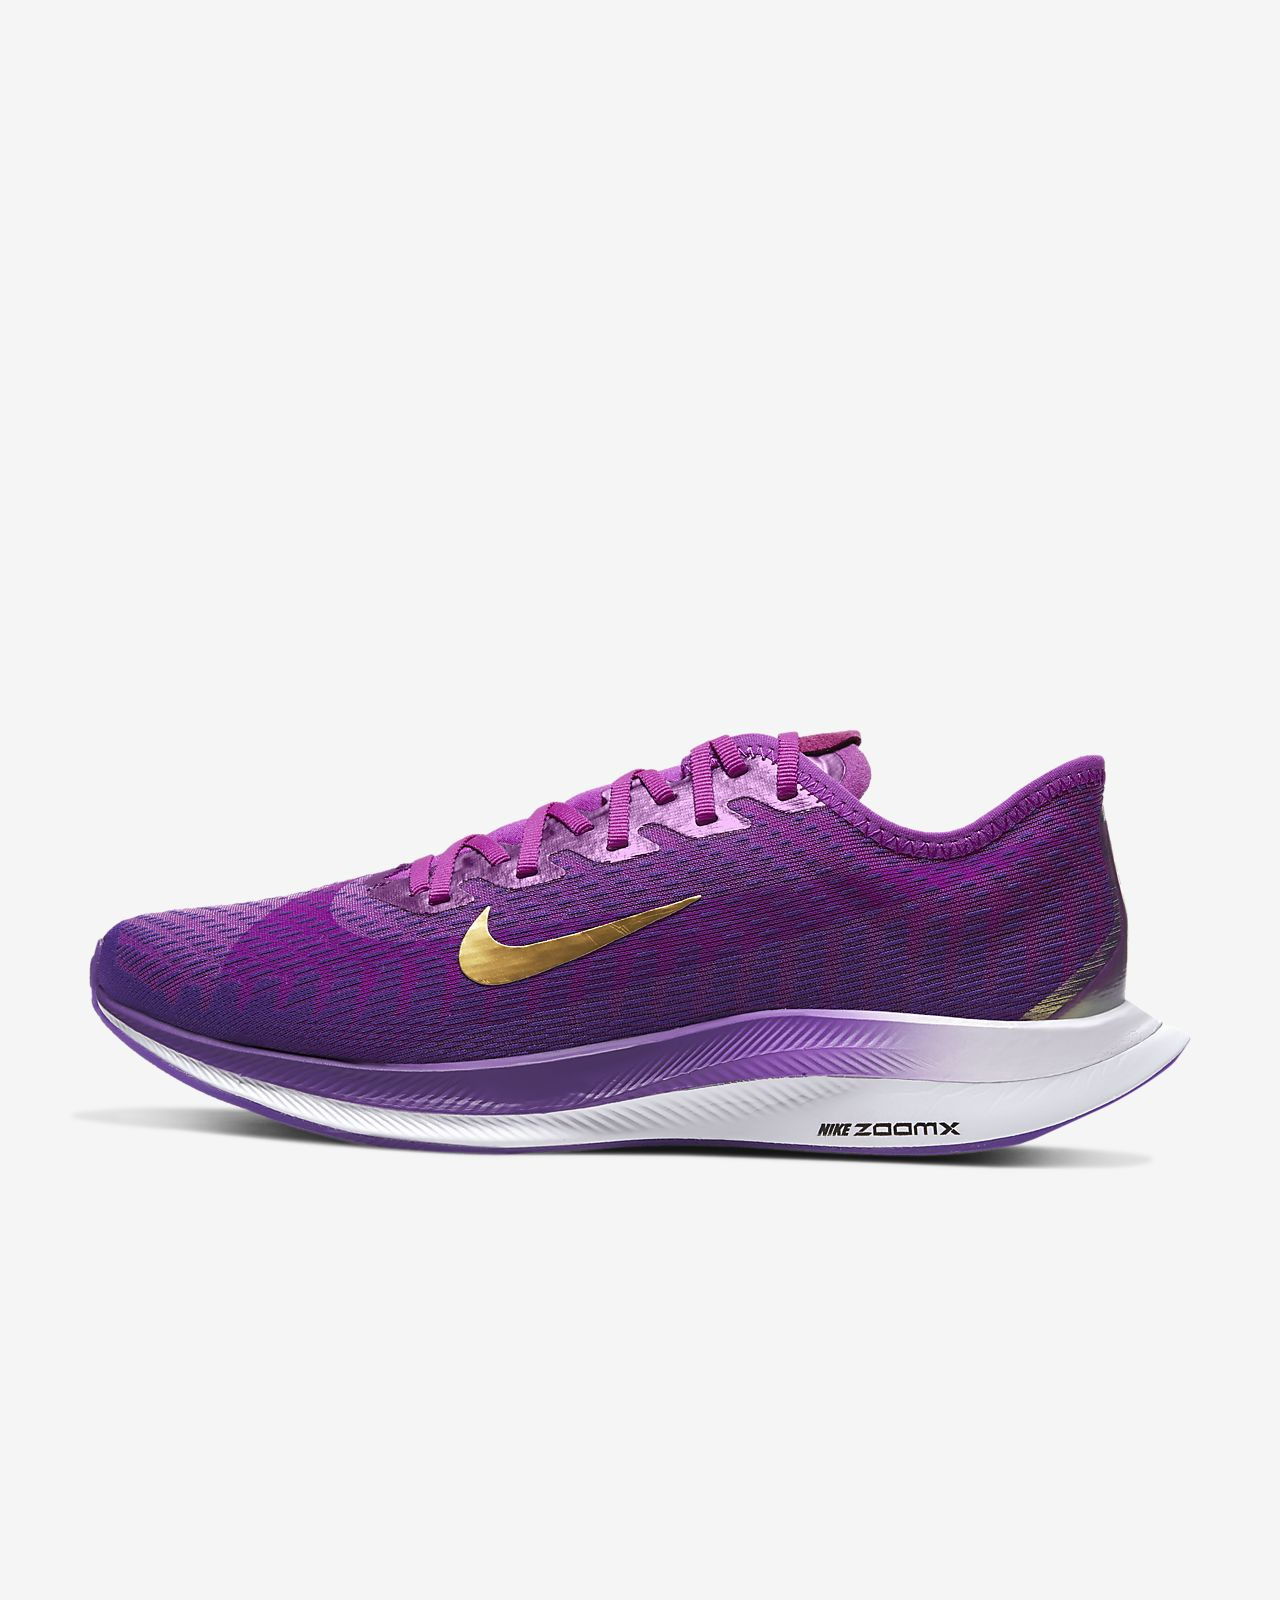 Damskie buty do biegania Nike Zoom Pegasus Turbo 2 Special Edition